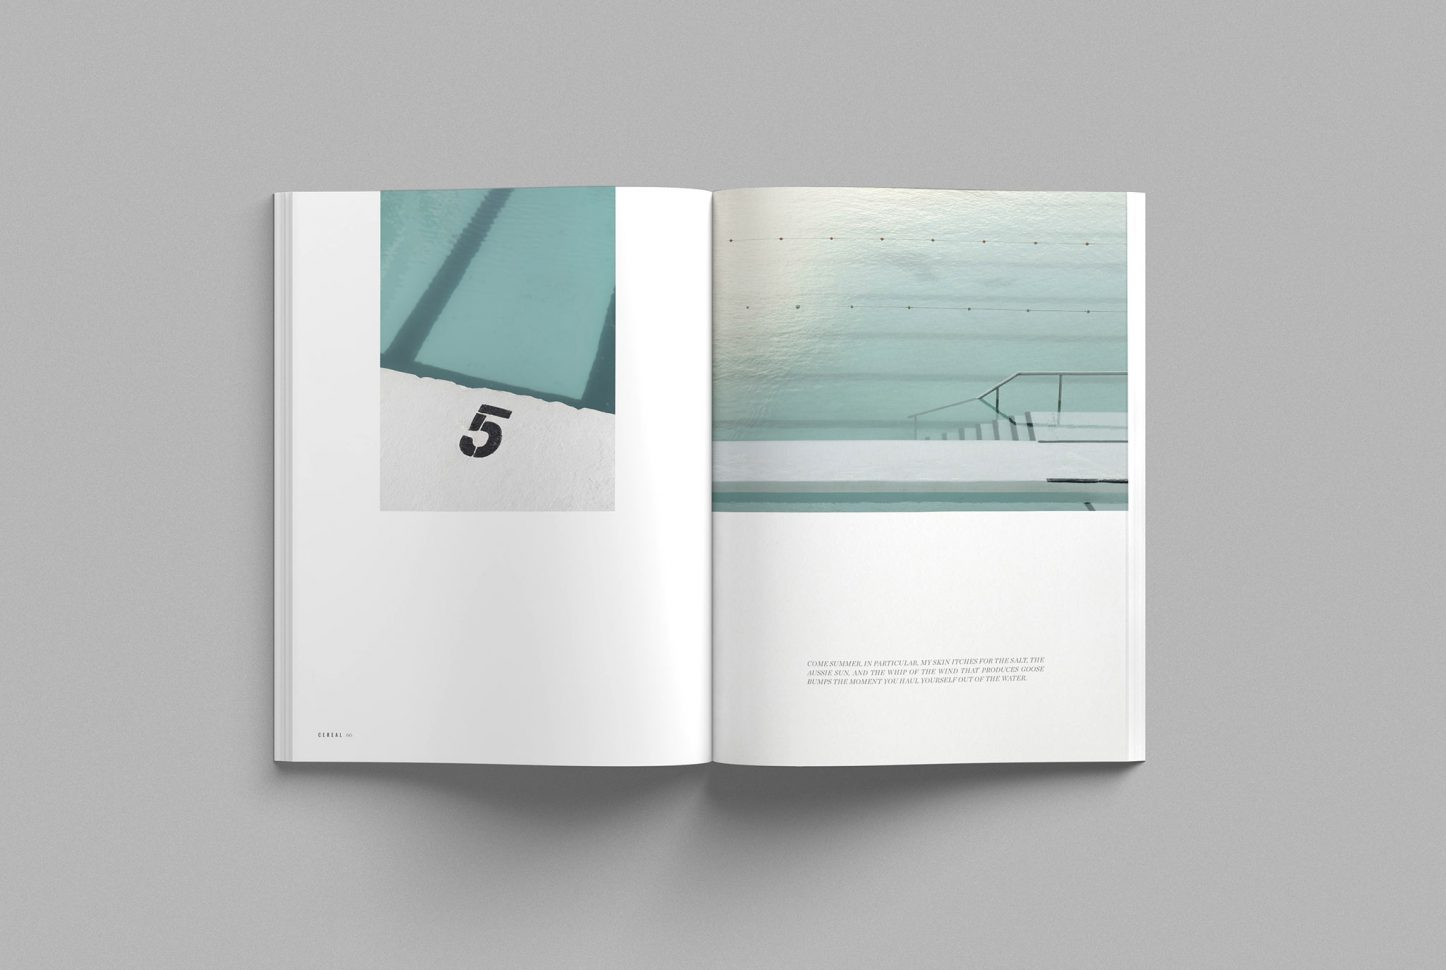 Cereal-Volume-13-page1-1446x970.jpg